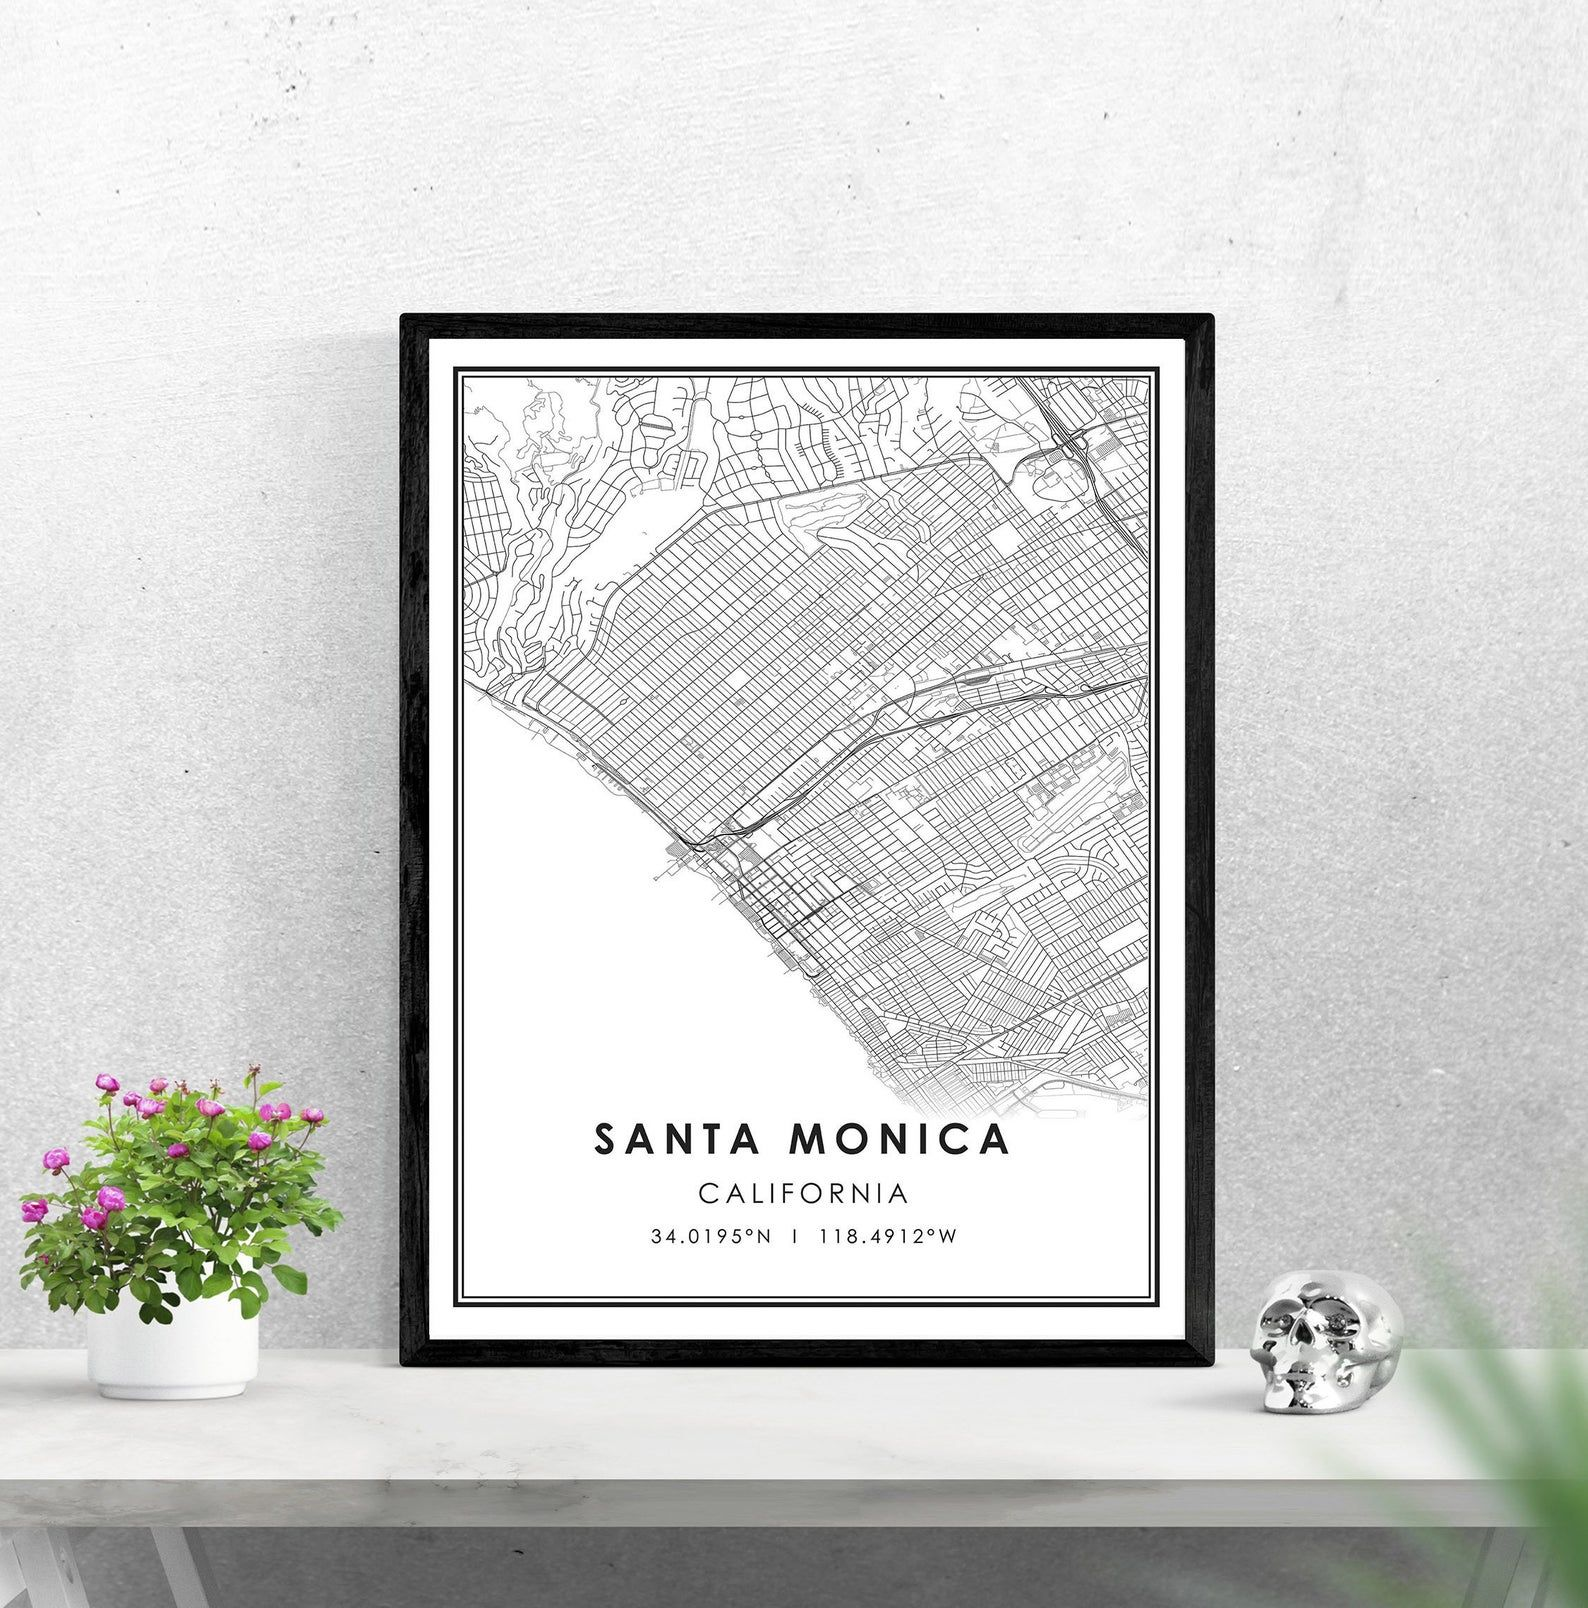 Santa Monica map print poster canvas Santa Monica